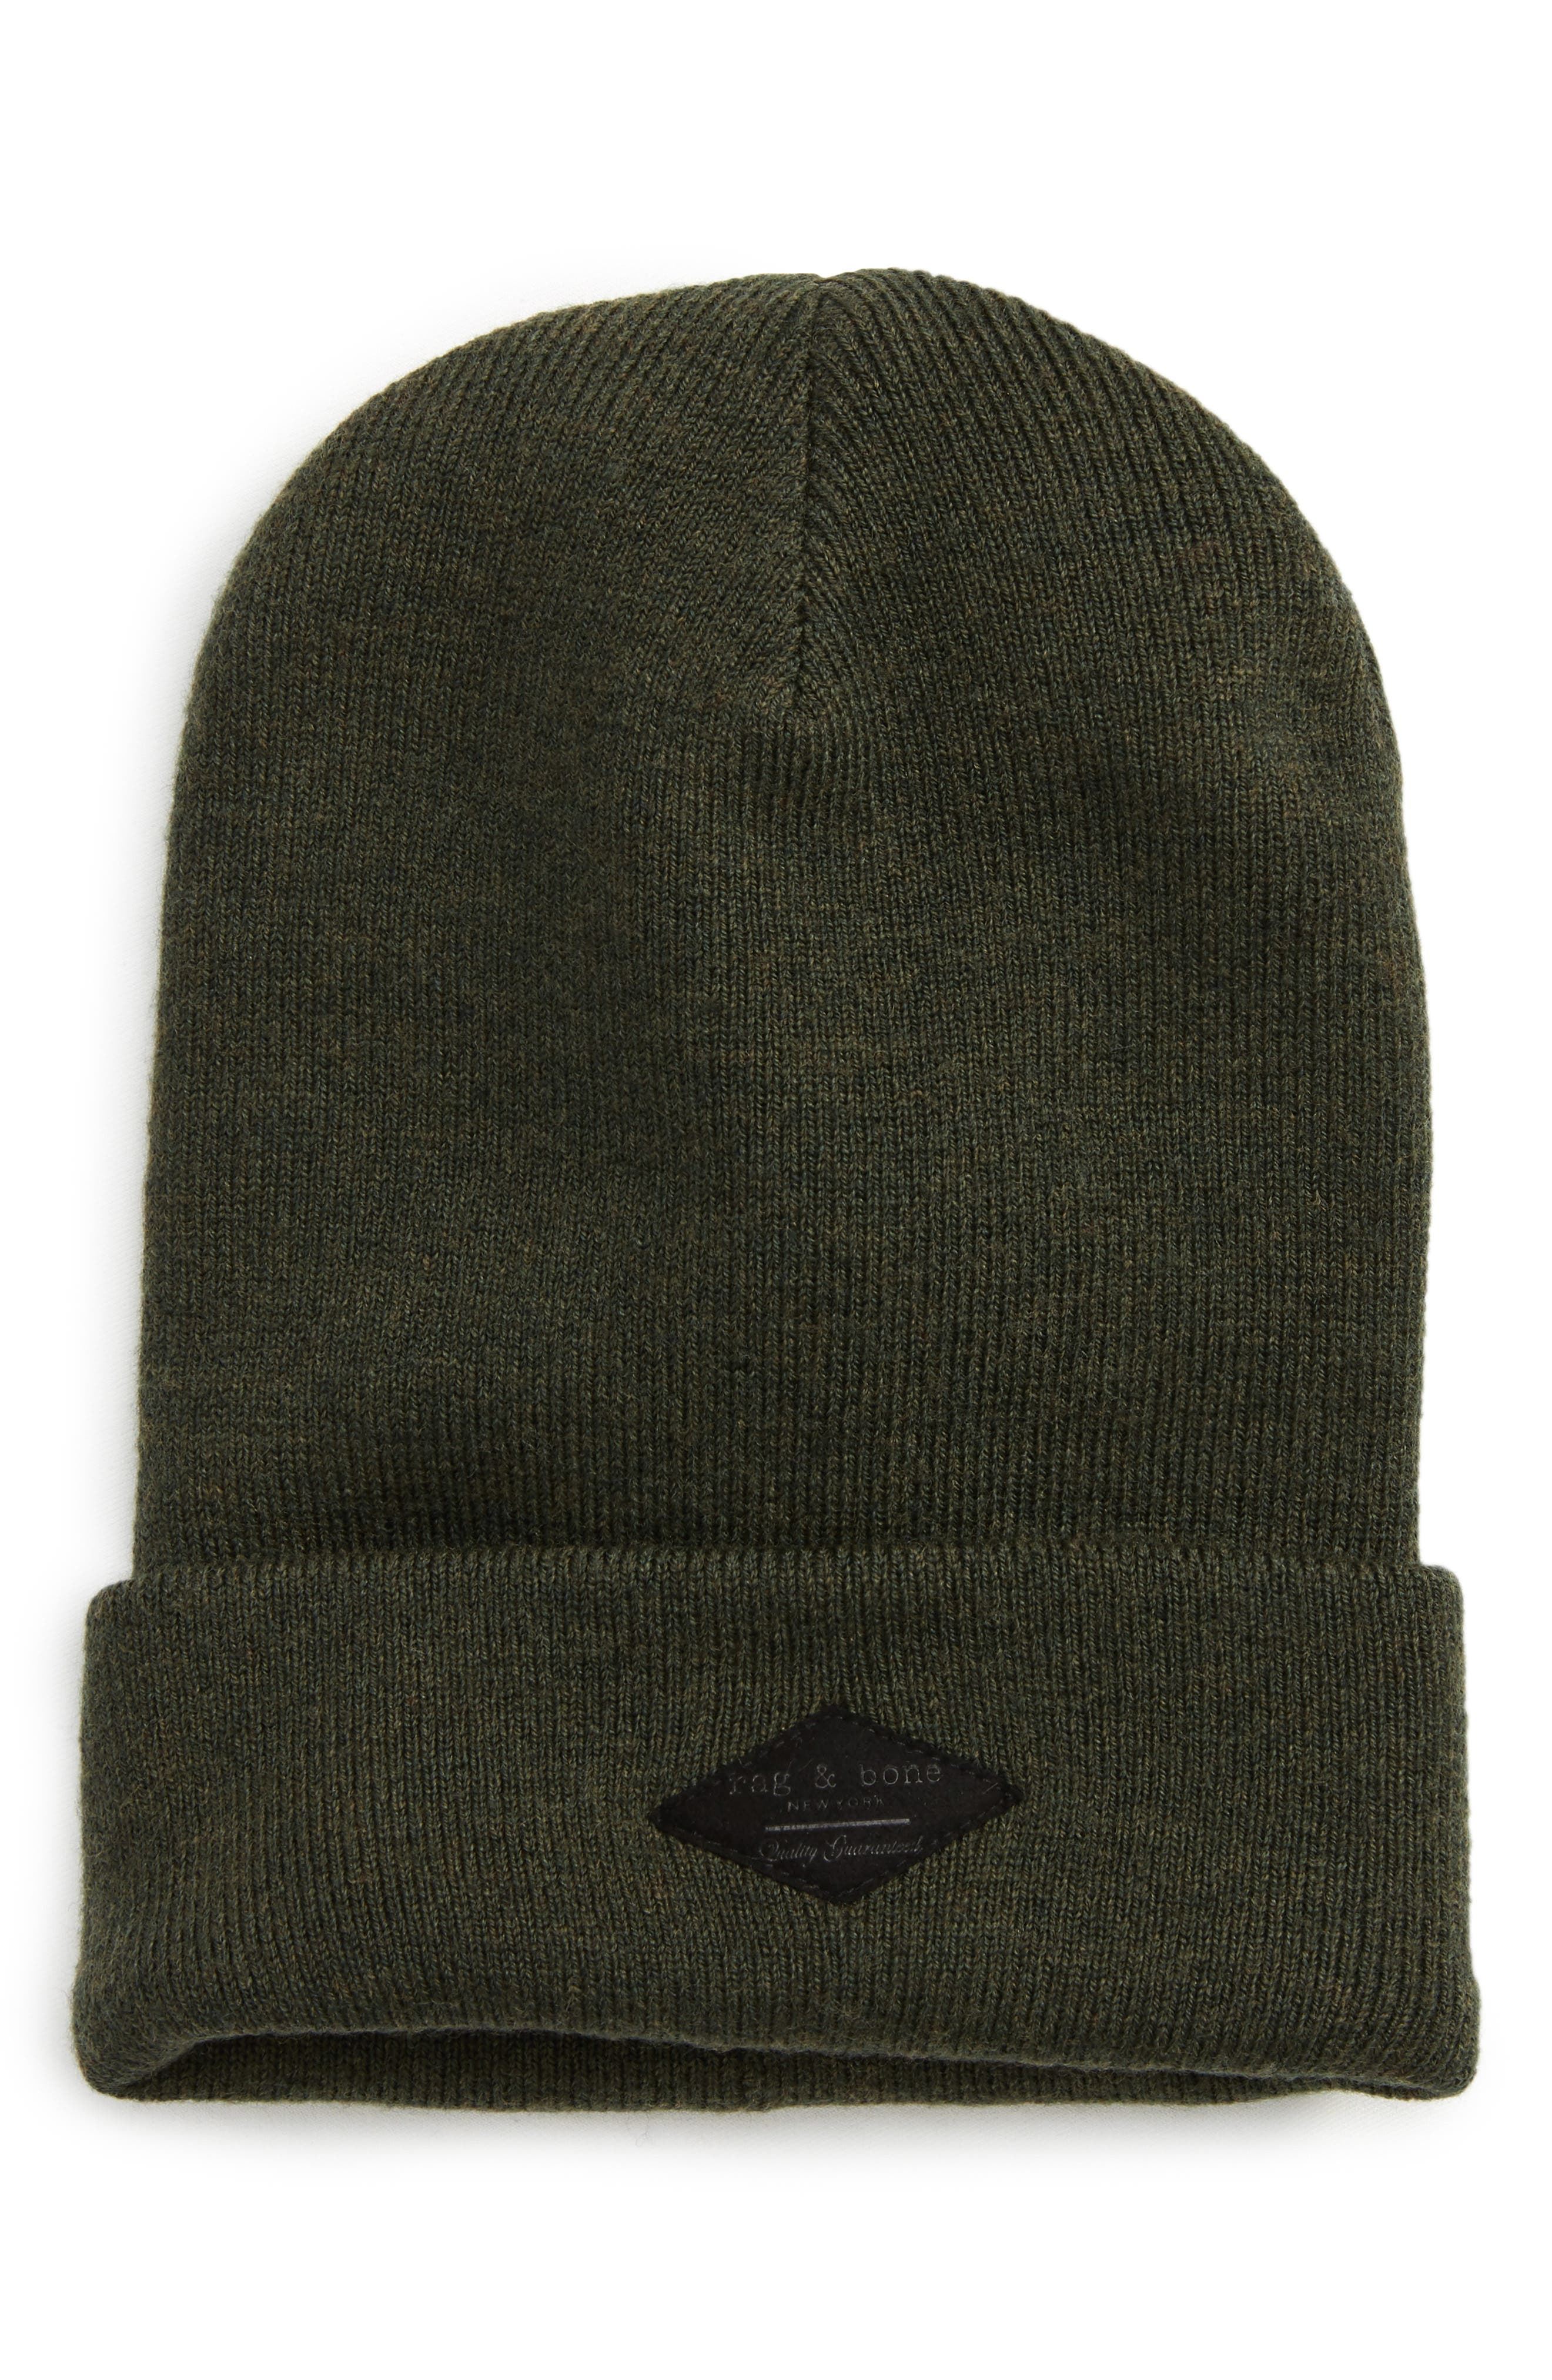 Addison Stretch Merino Wool Knit Cap,                         Main,                         color, Army Green